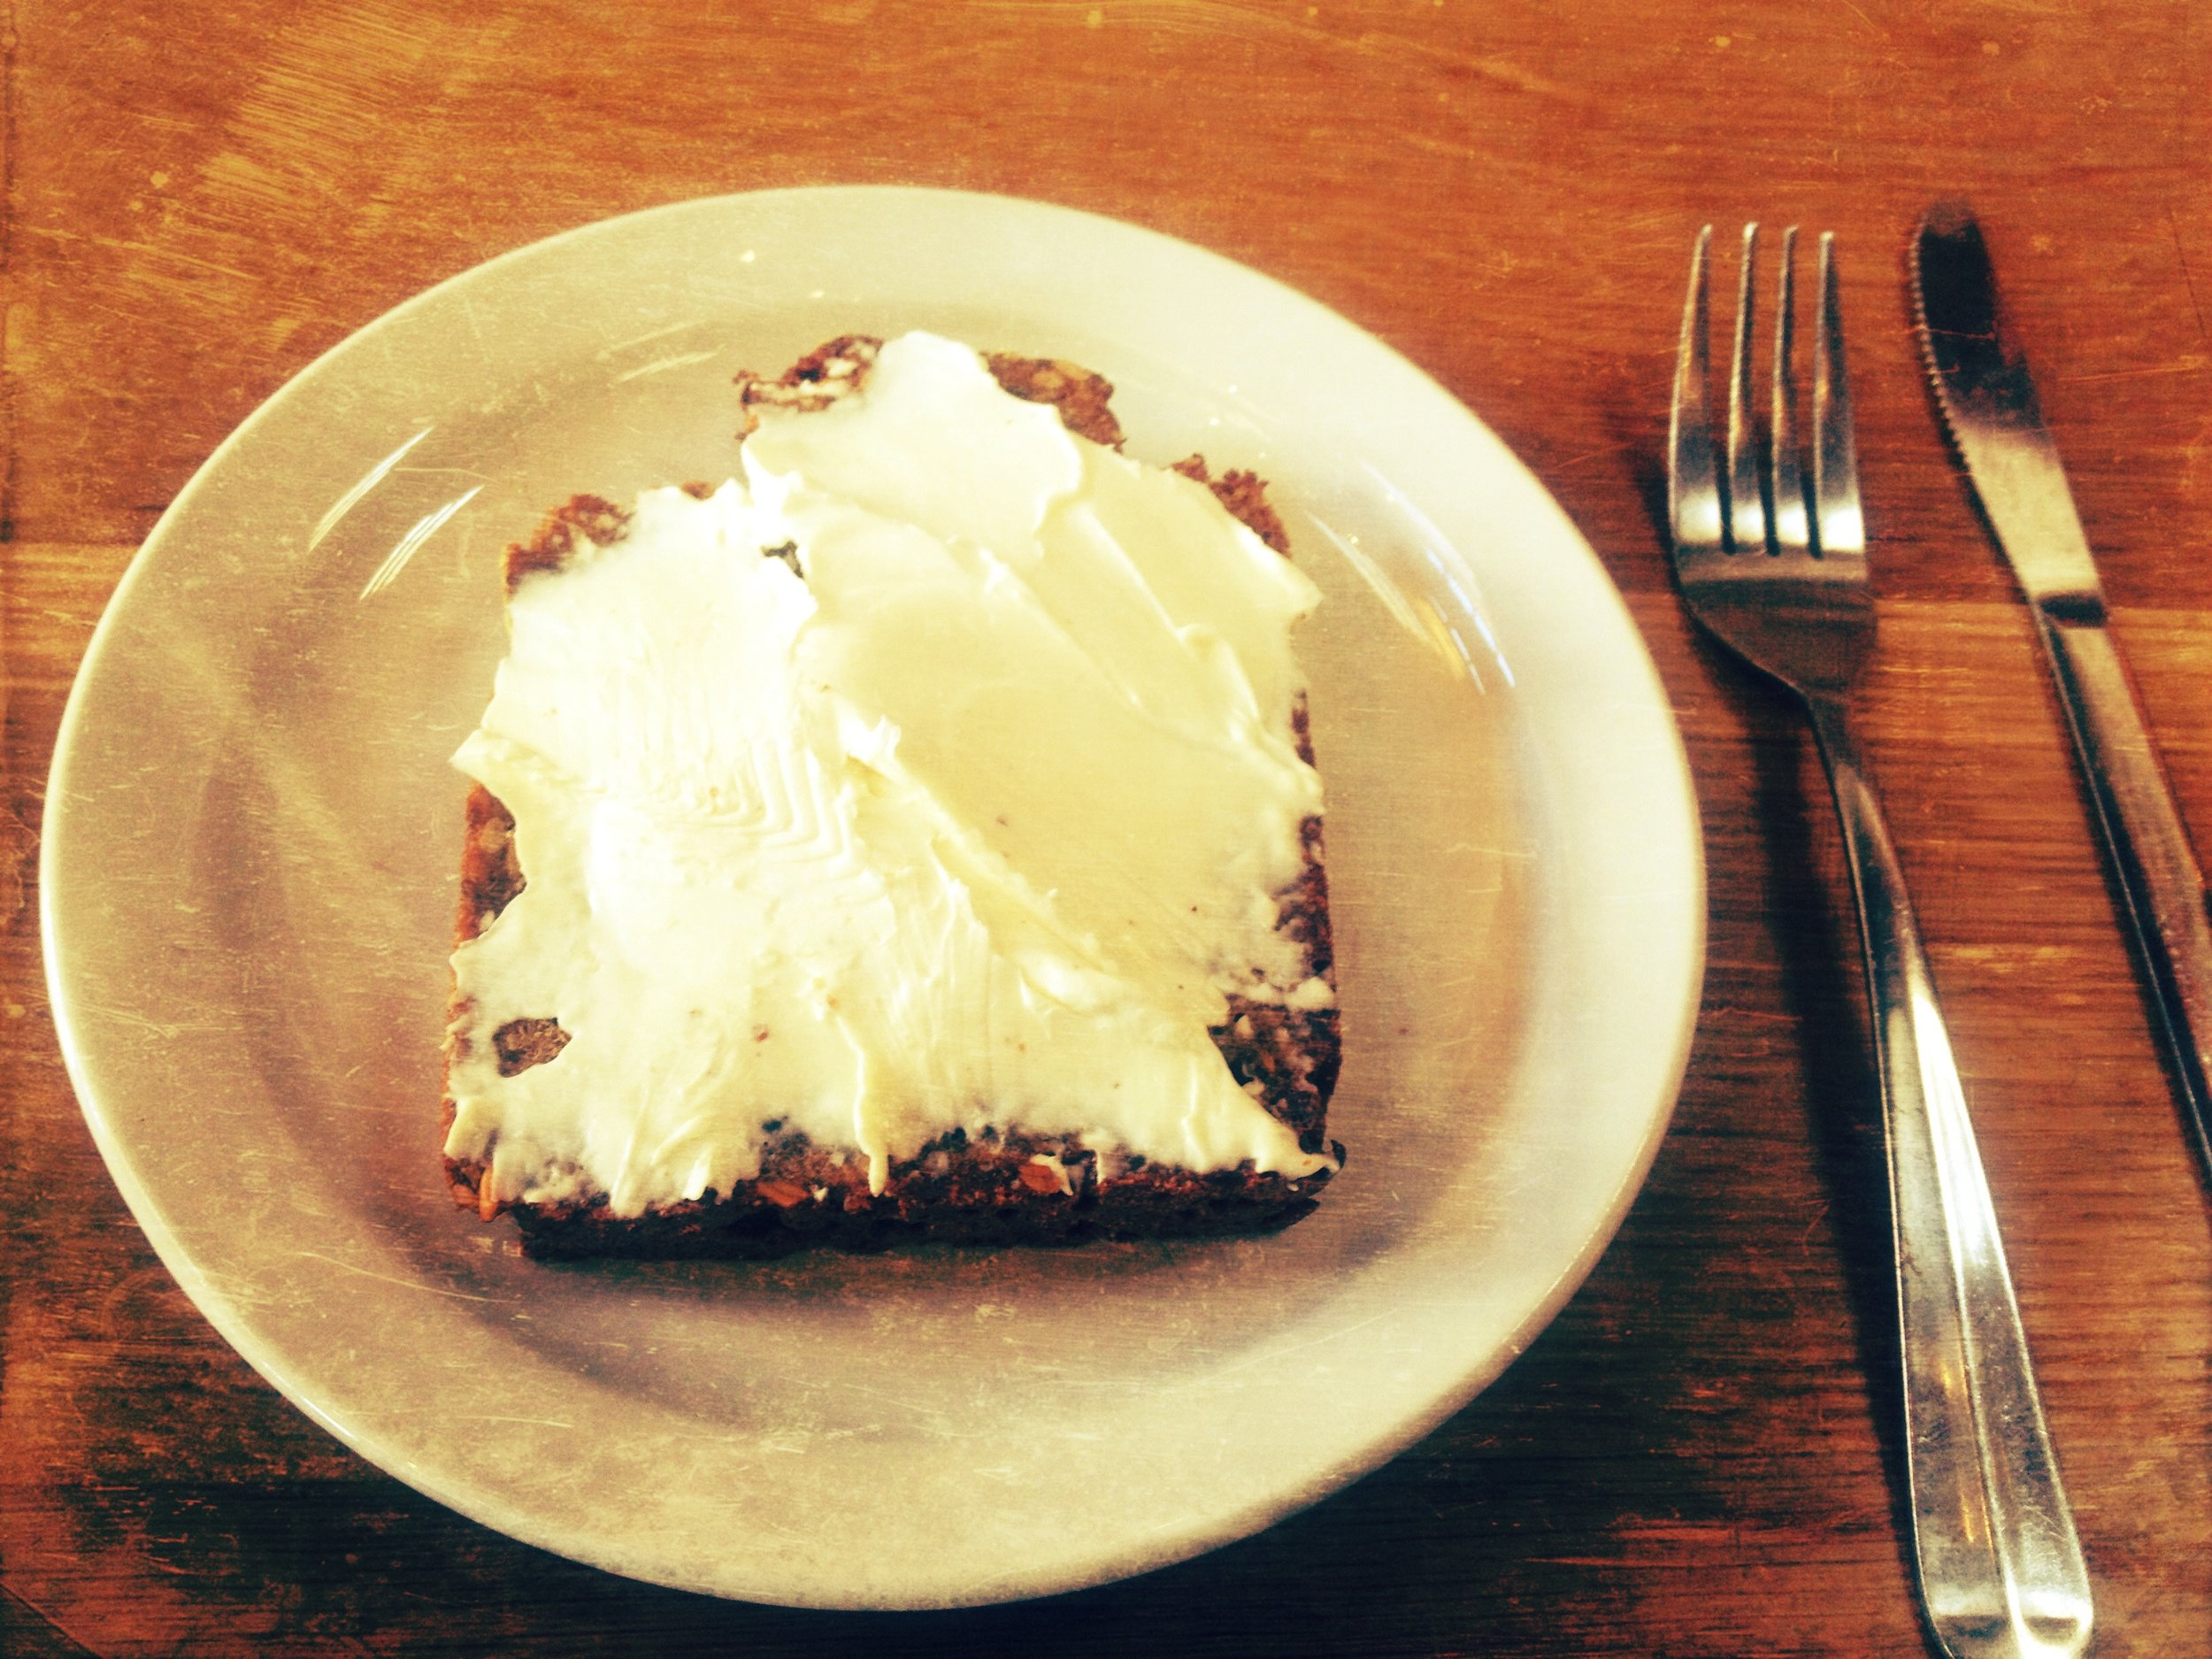 Rye toast & cream cheese at The Mill. Hail yeah.